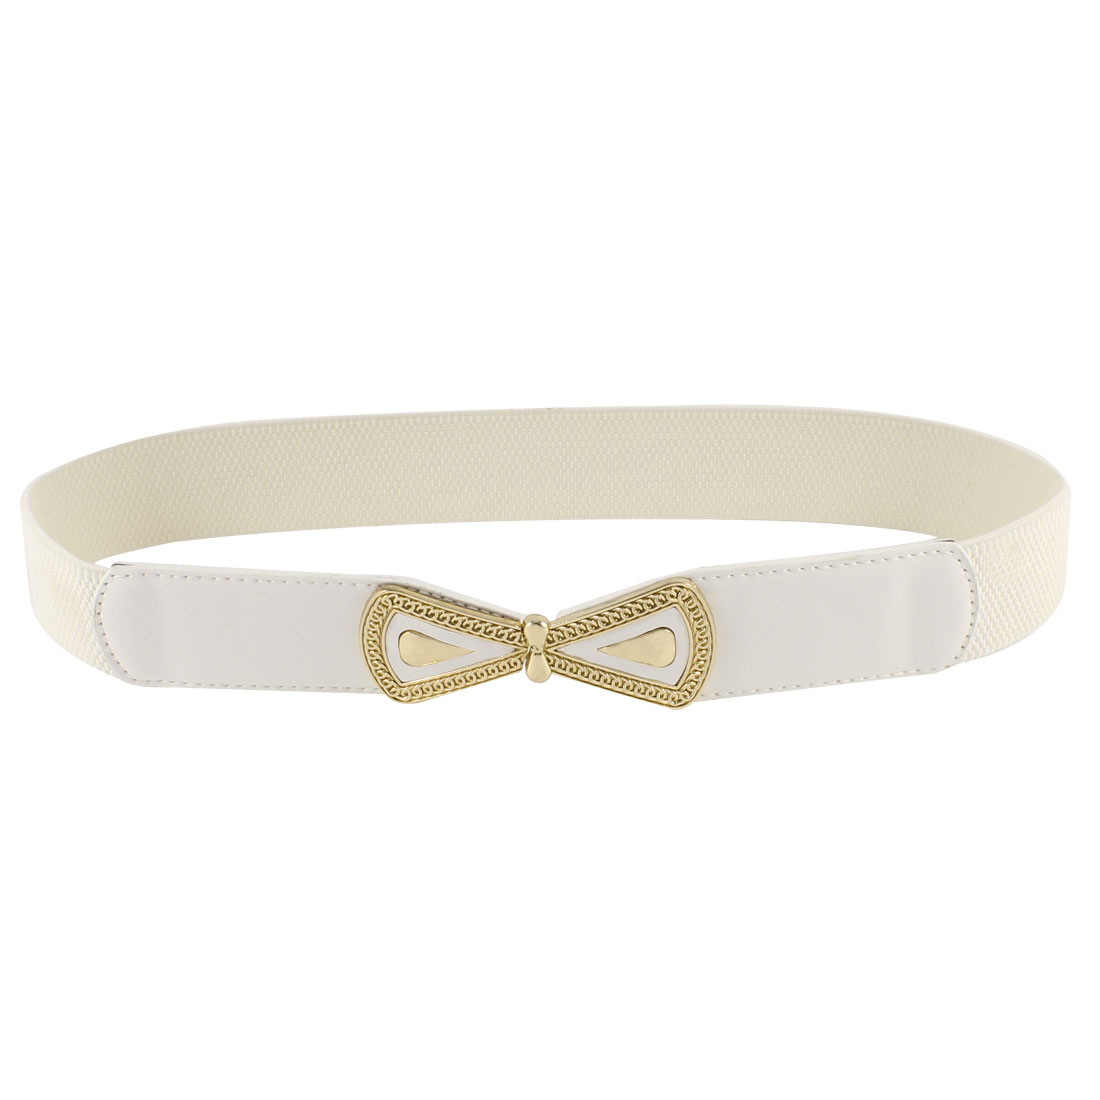 Women Bowtie Interlock Buckle Faux Leather Waistband Skinny Waist Belt White